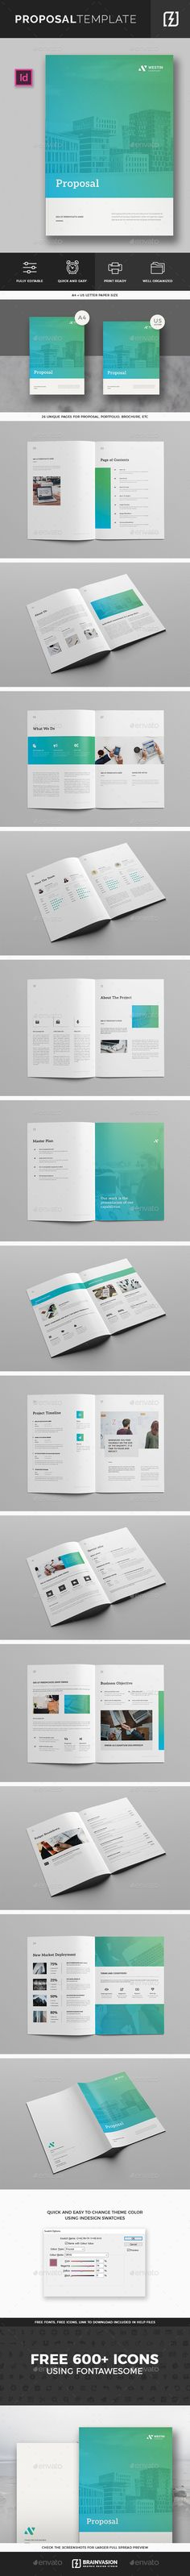 Social Media Proposal \u2014 InDesign INDD #seo proposal #cover letter - purchase proposal templates